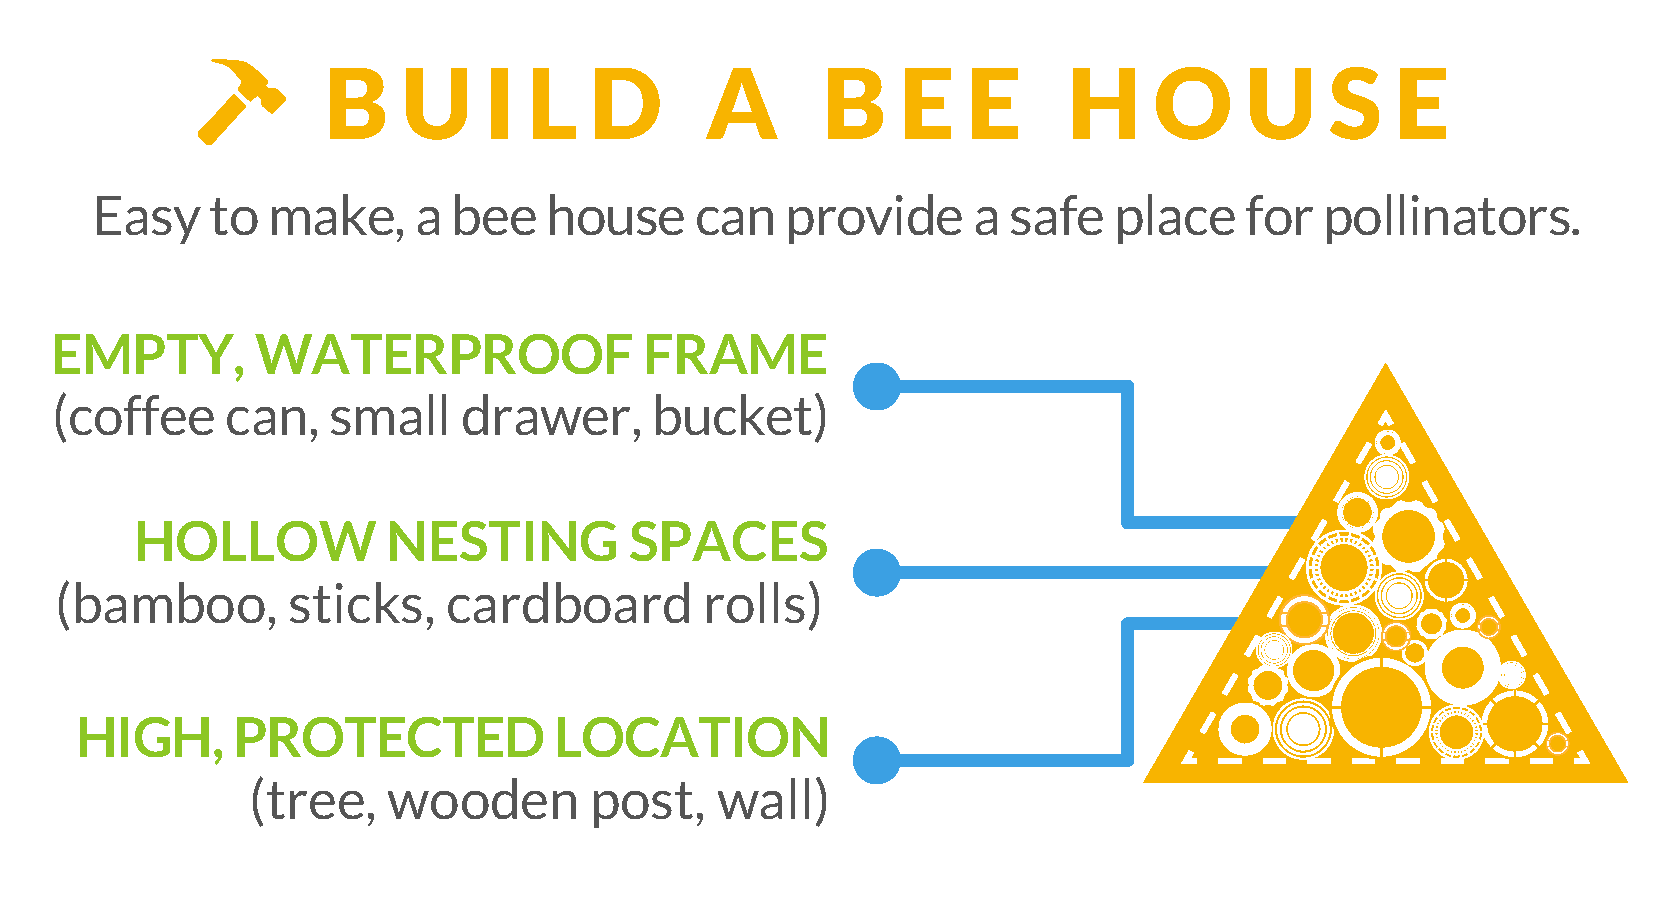 Materials needed for a bee house